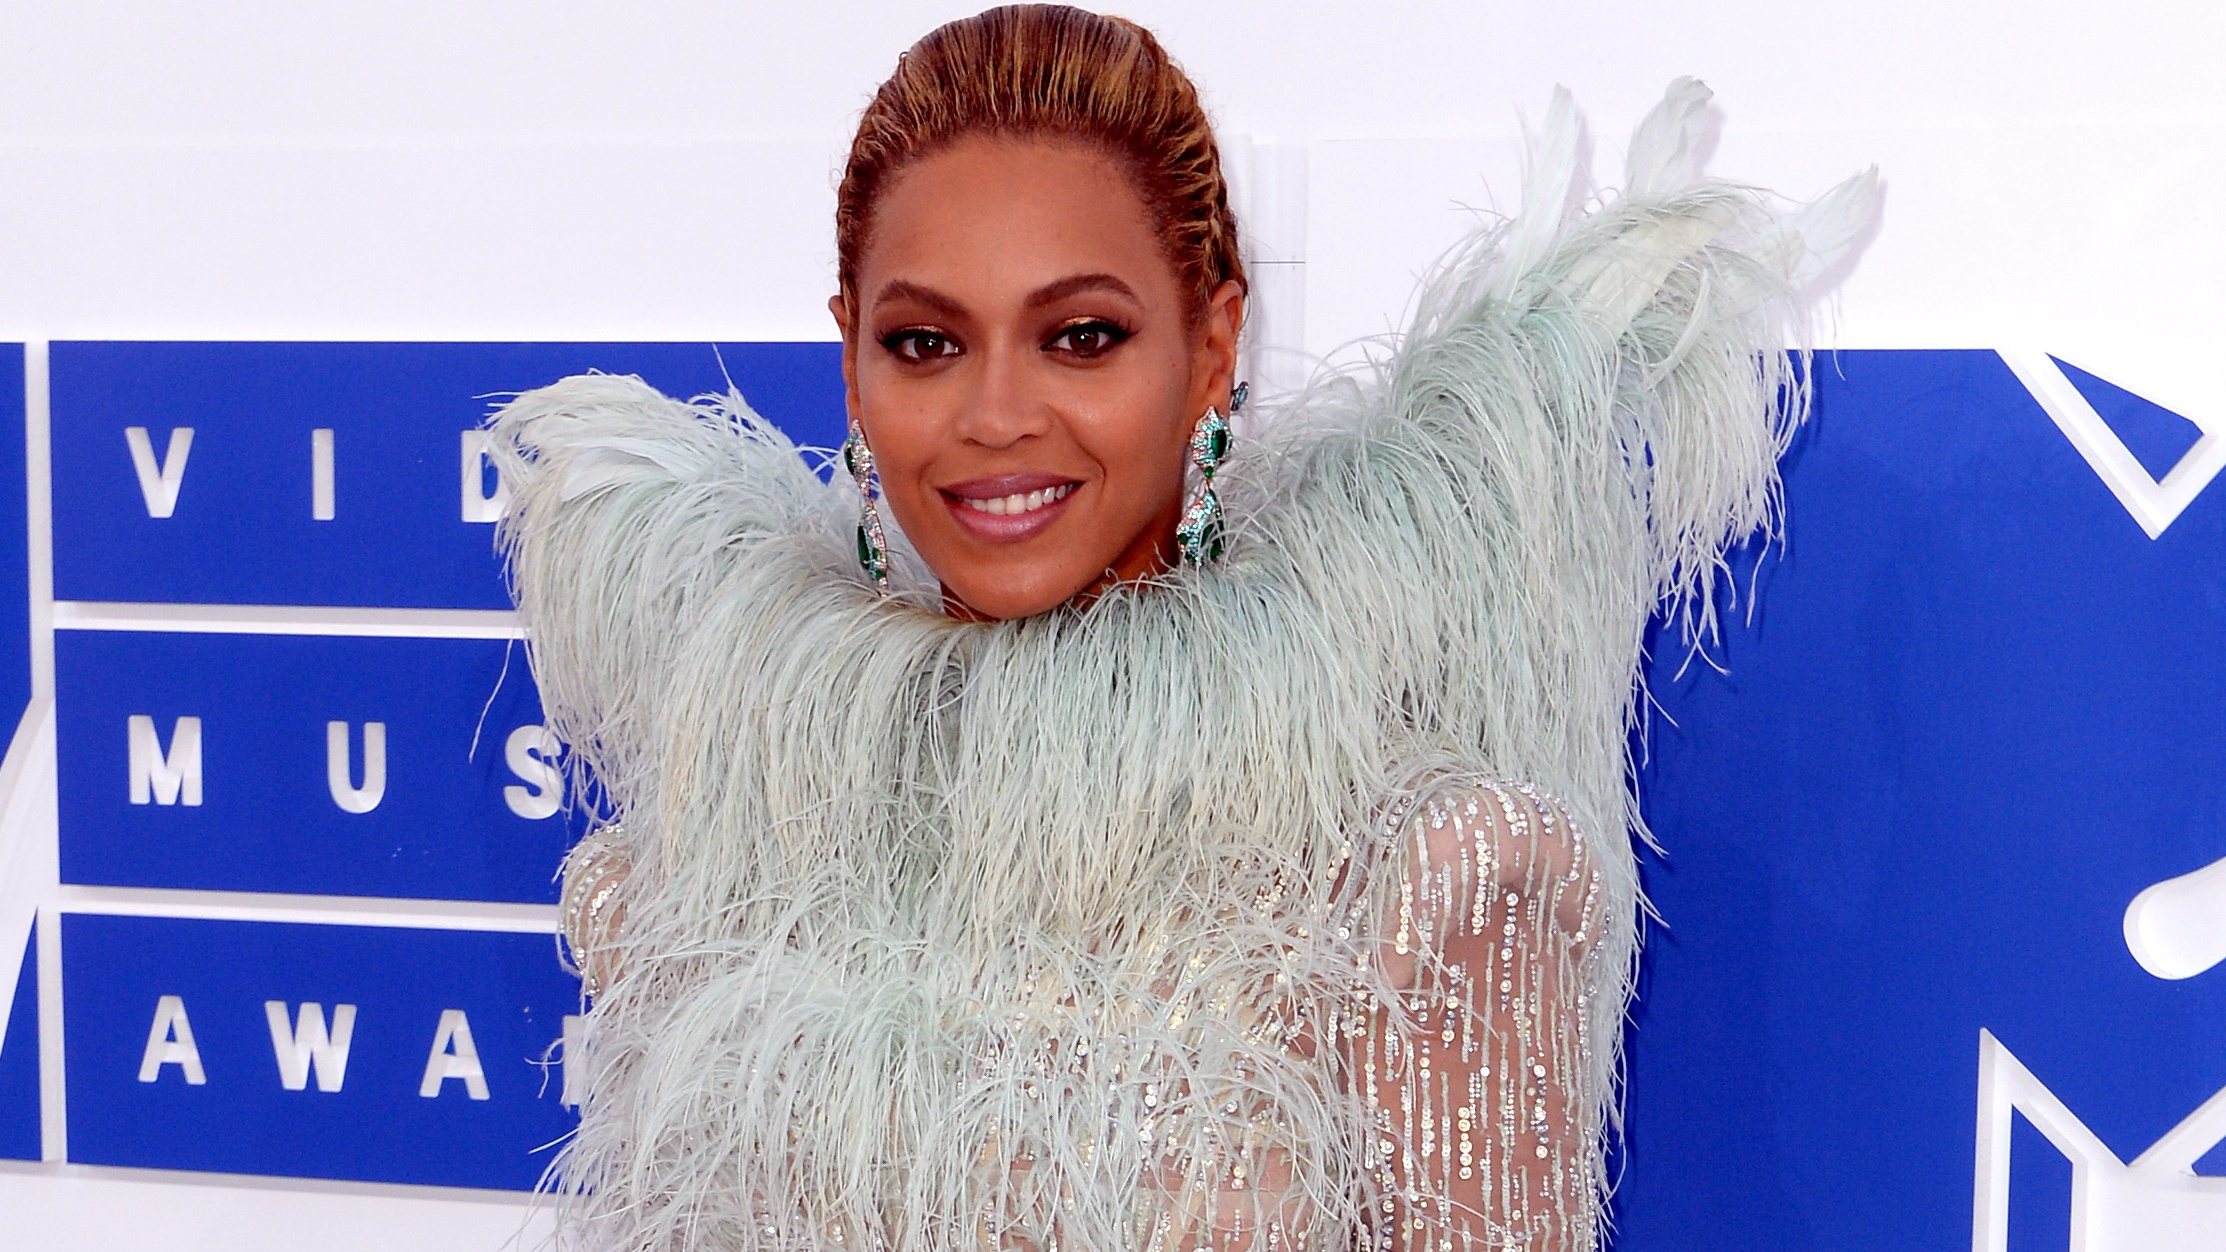 Beyoncé's twins are still in hospital due to minor issues